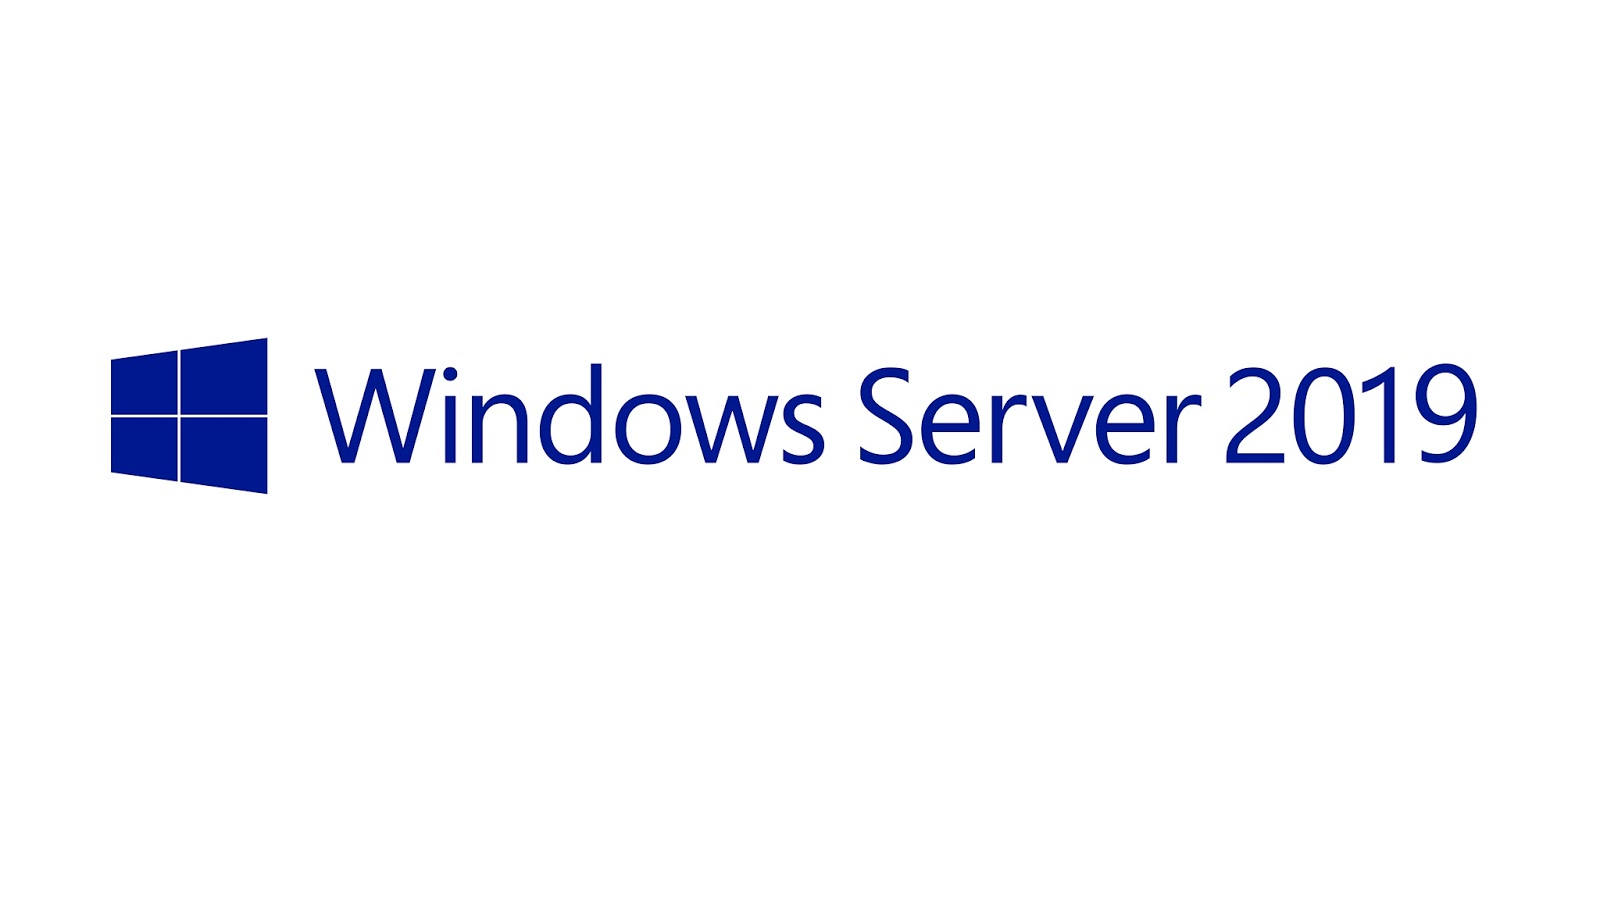 DELL Microsoft Windows Server 5 User Cals for 2019